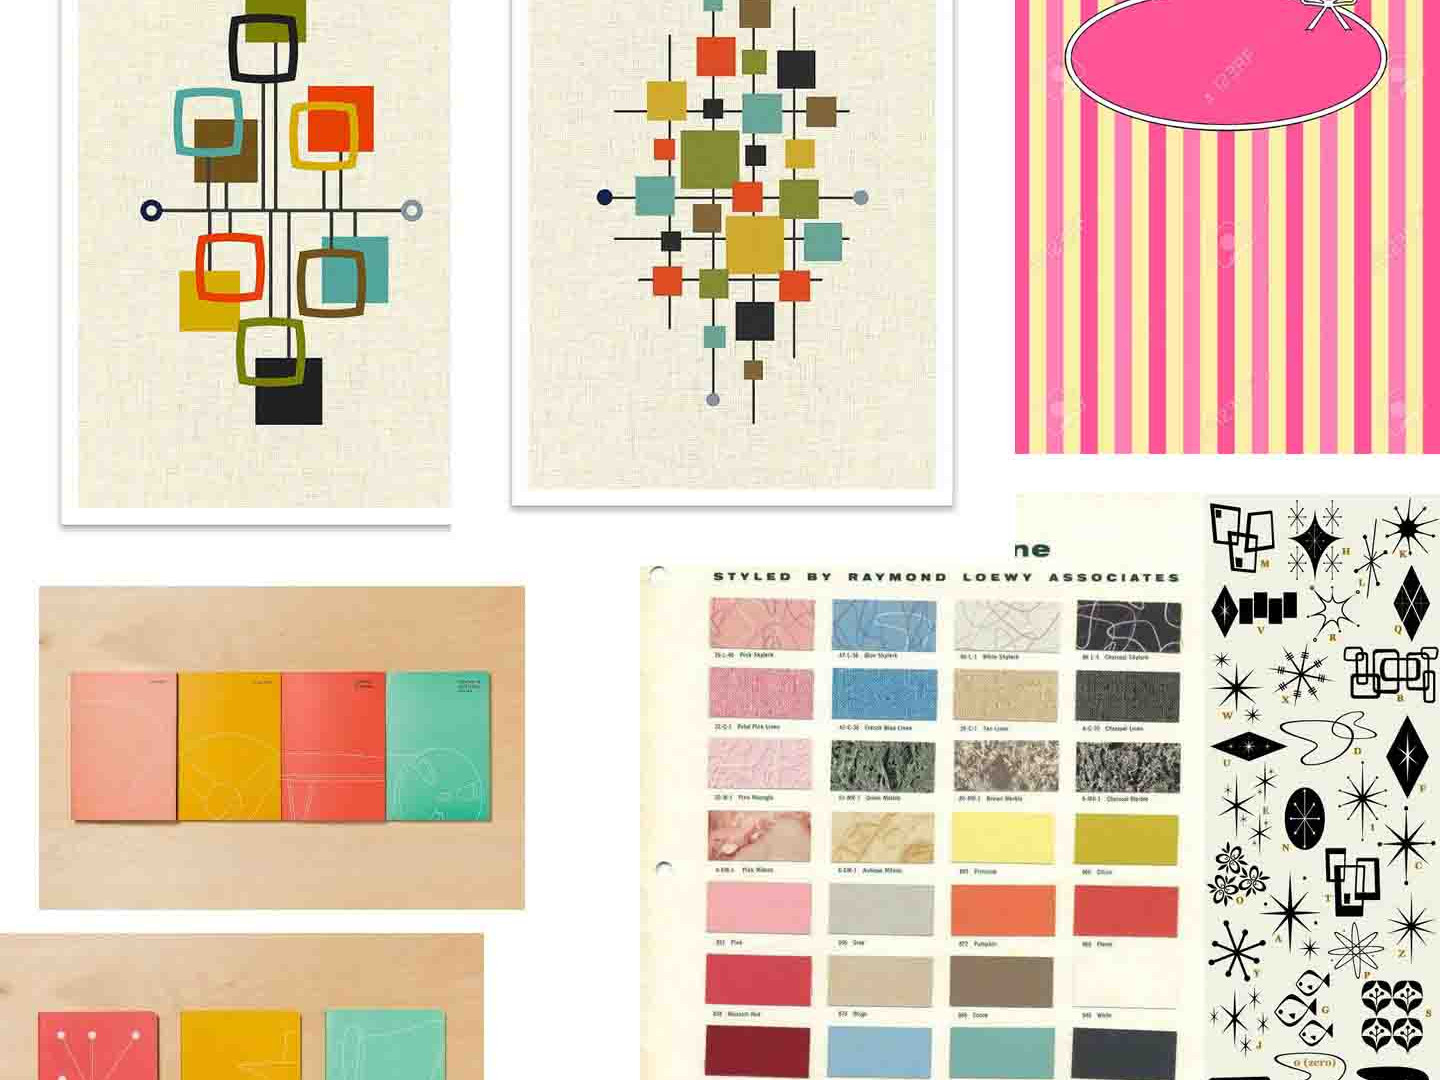 PALETTE RESEARCH